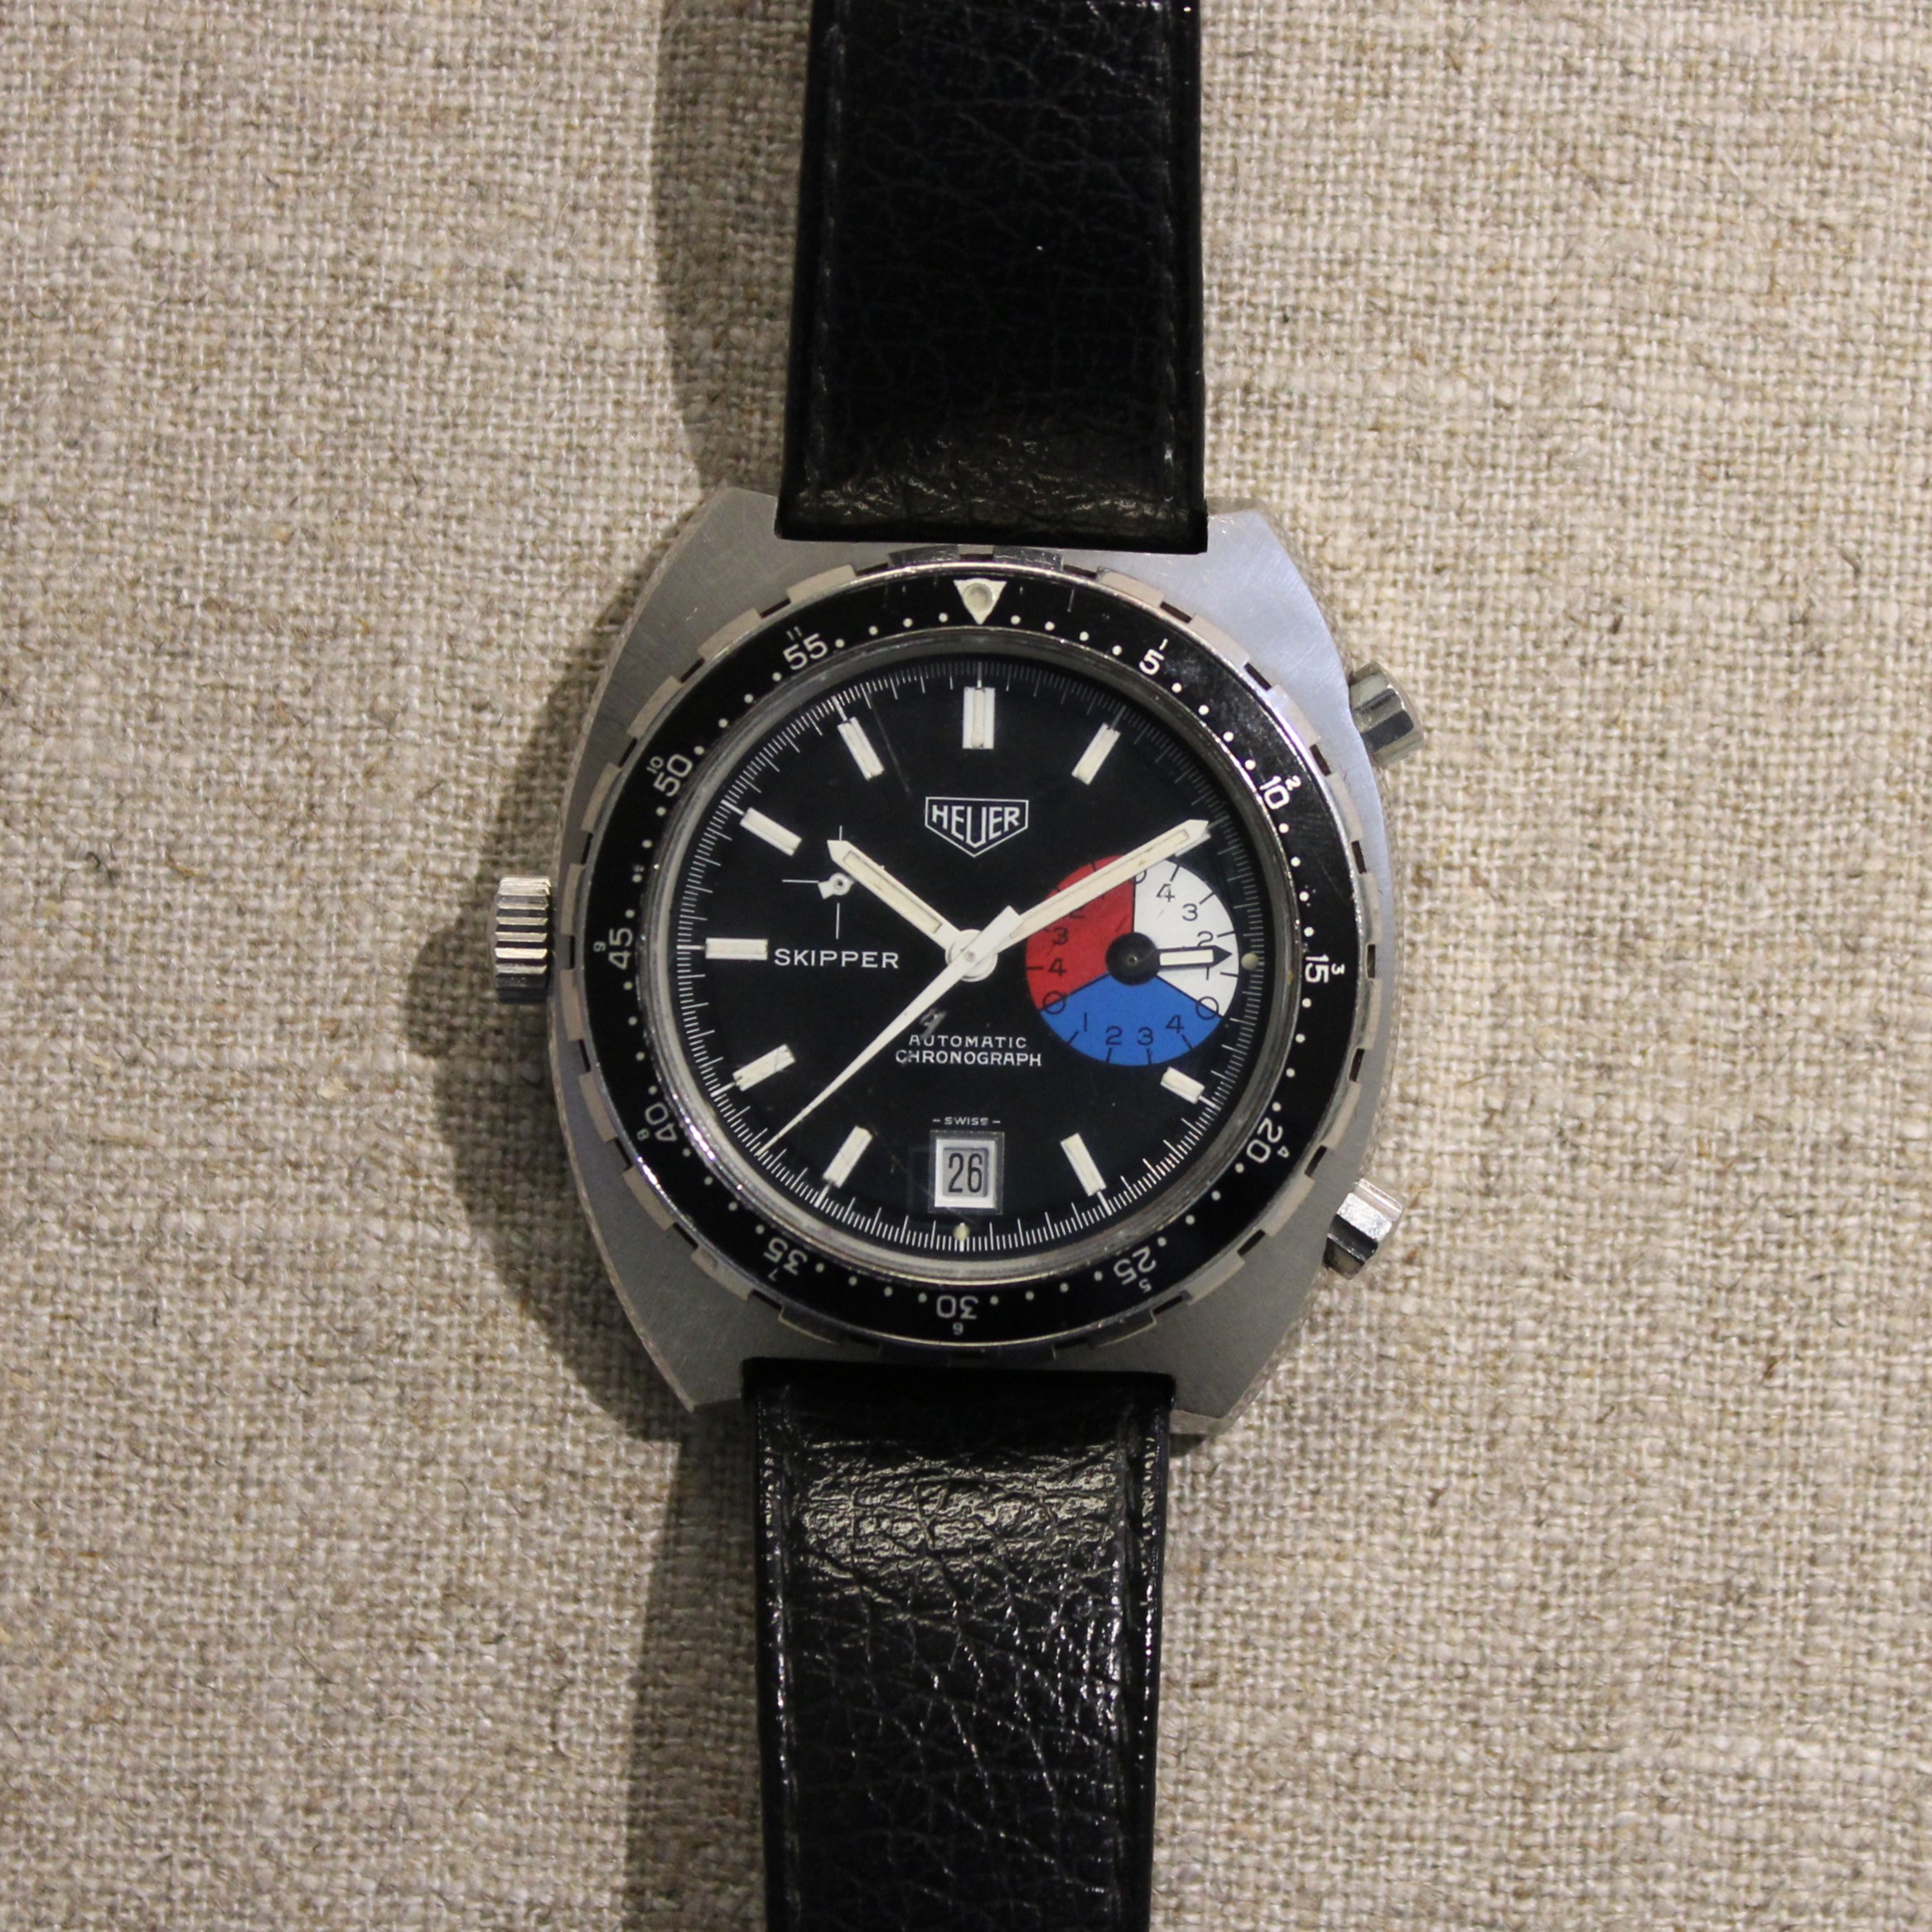 VINTAGE STAINLESS STEEL HEUER SKIPPER AUTOMATIC CHRONOGRAPH WATCH